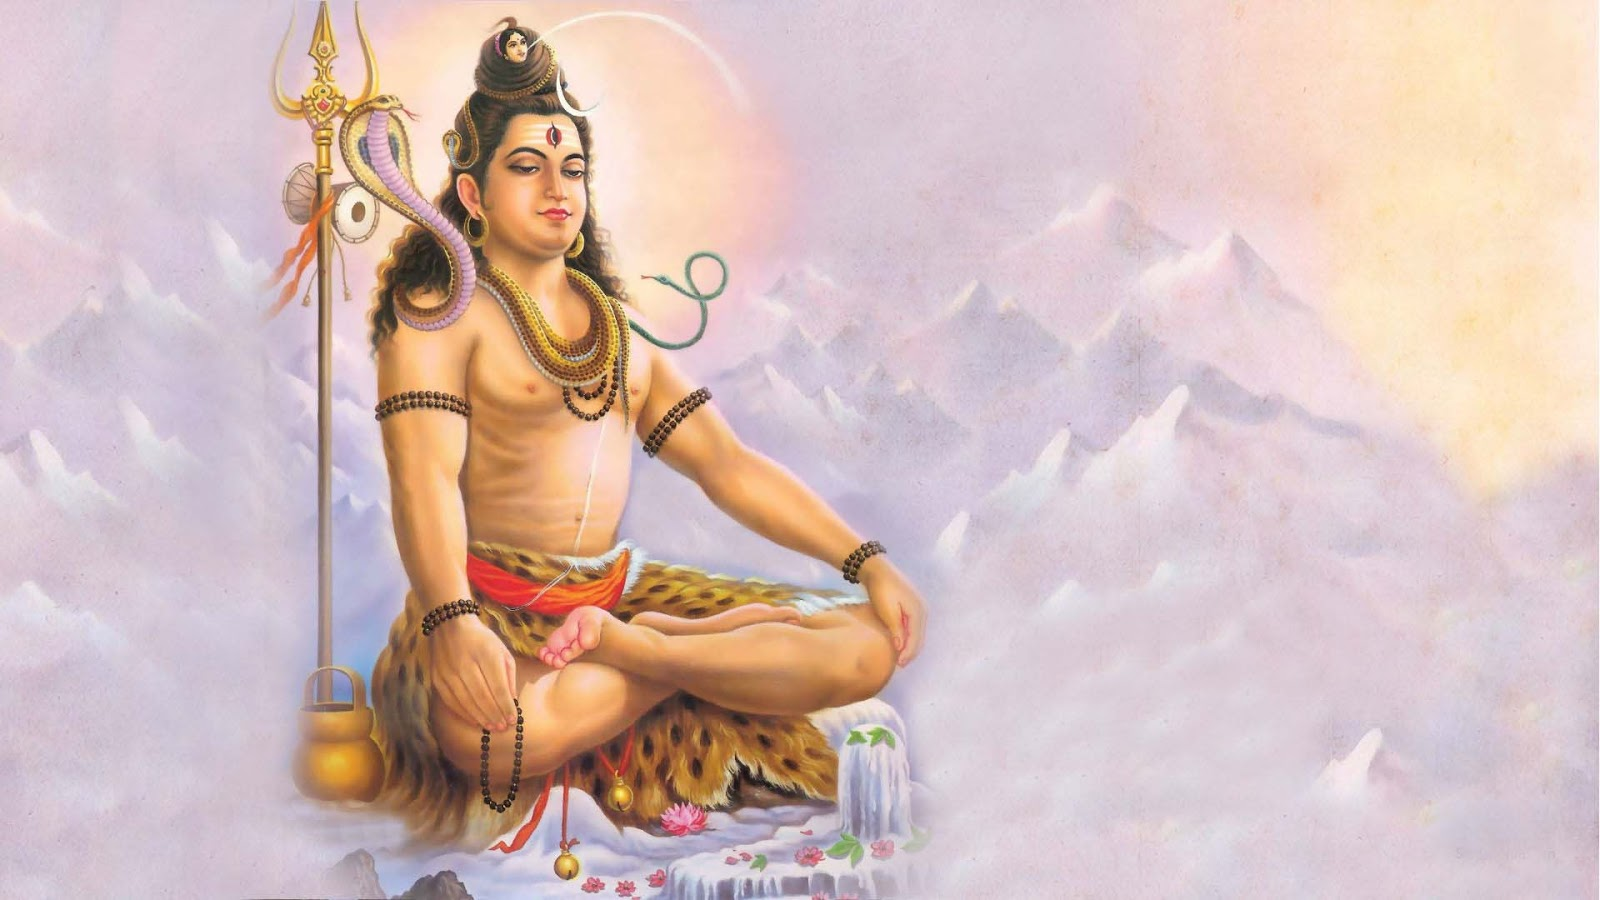 Lord-Shiva-on-Meditation-images